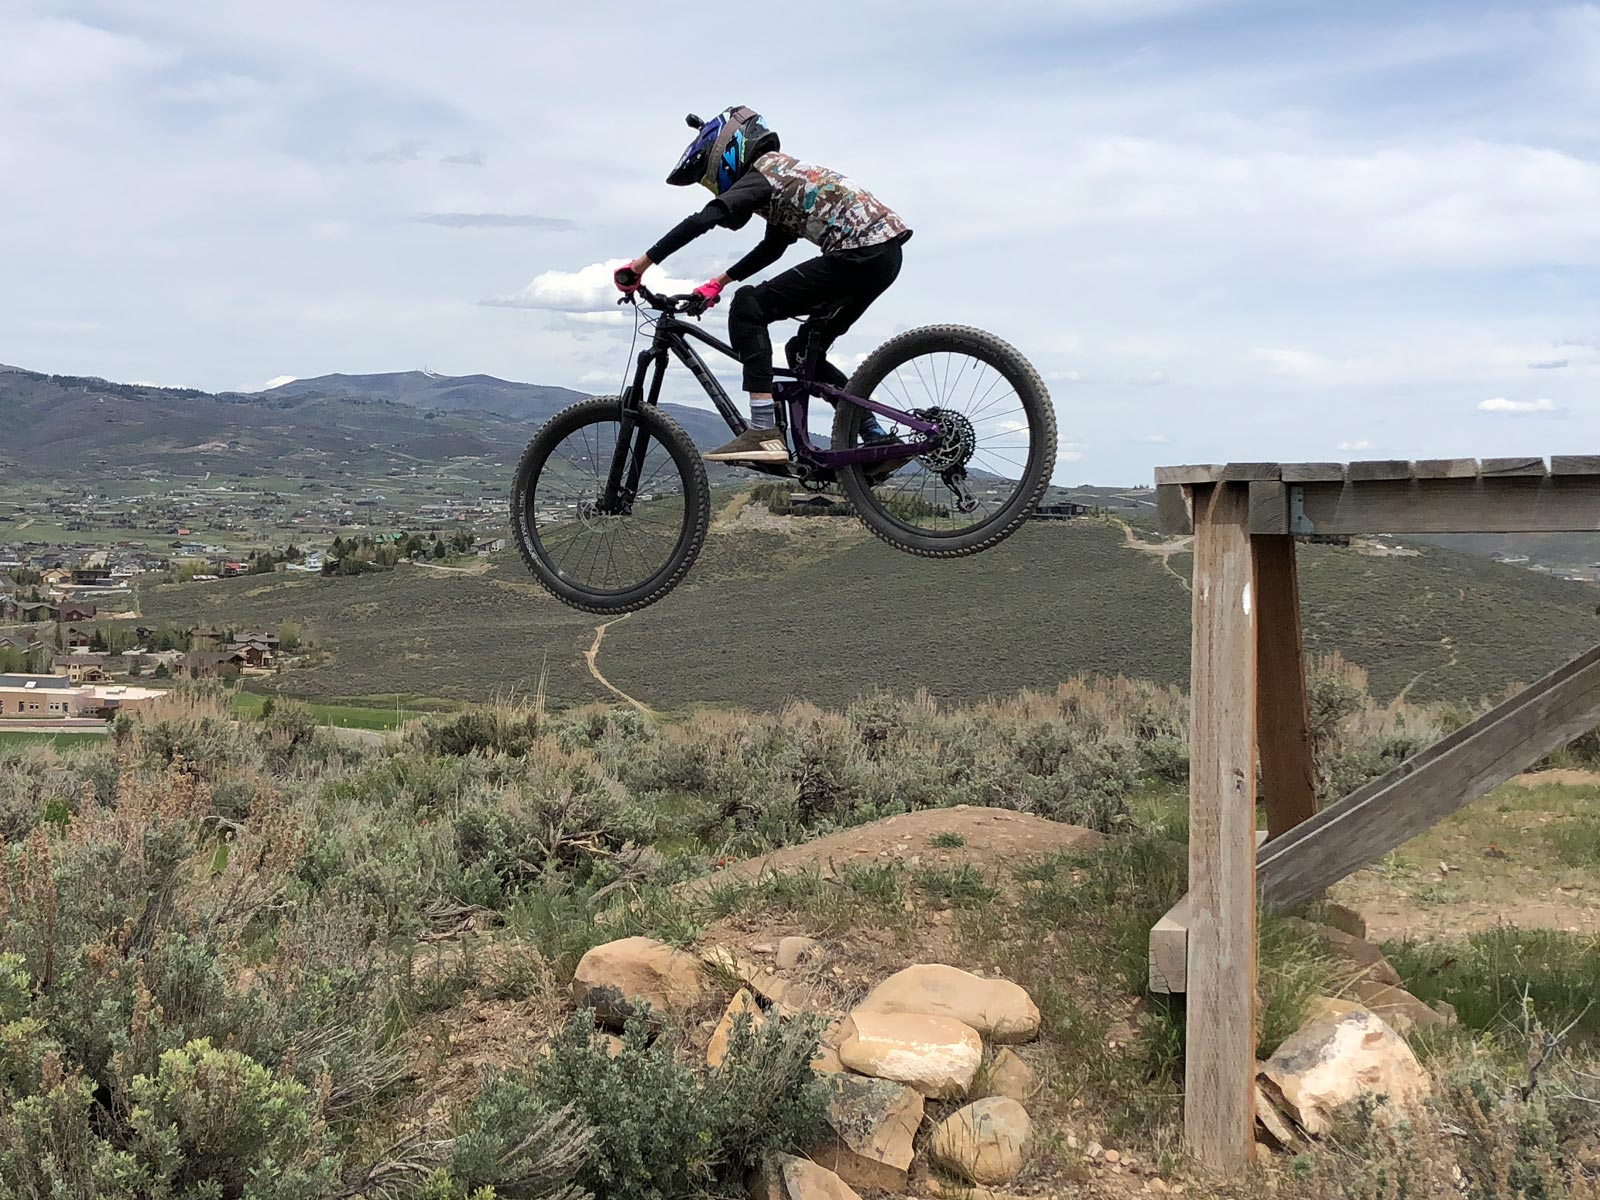 Dropping in at Trailside Bike Park